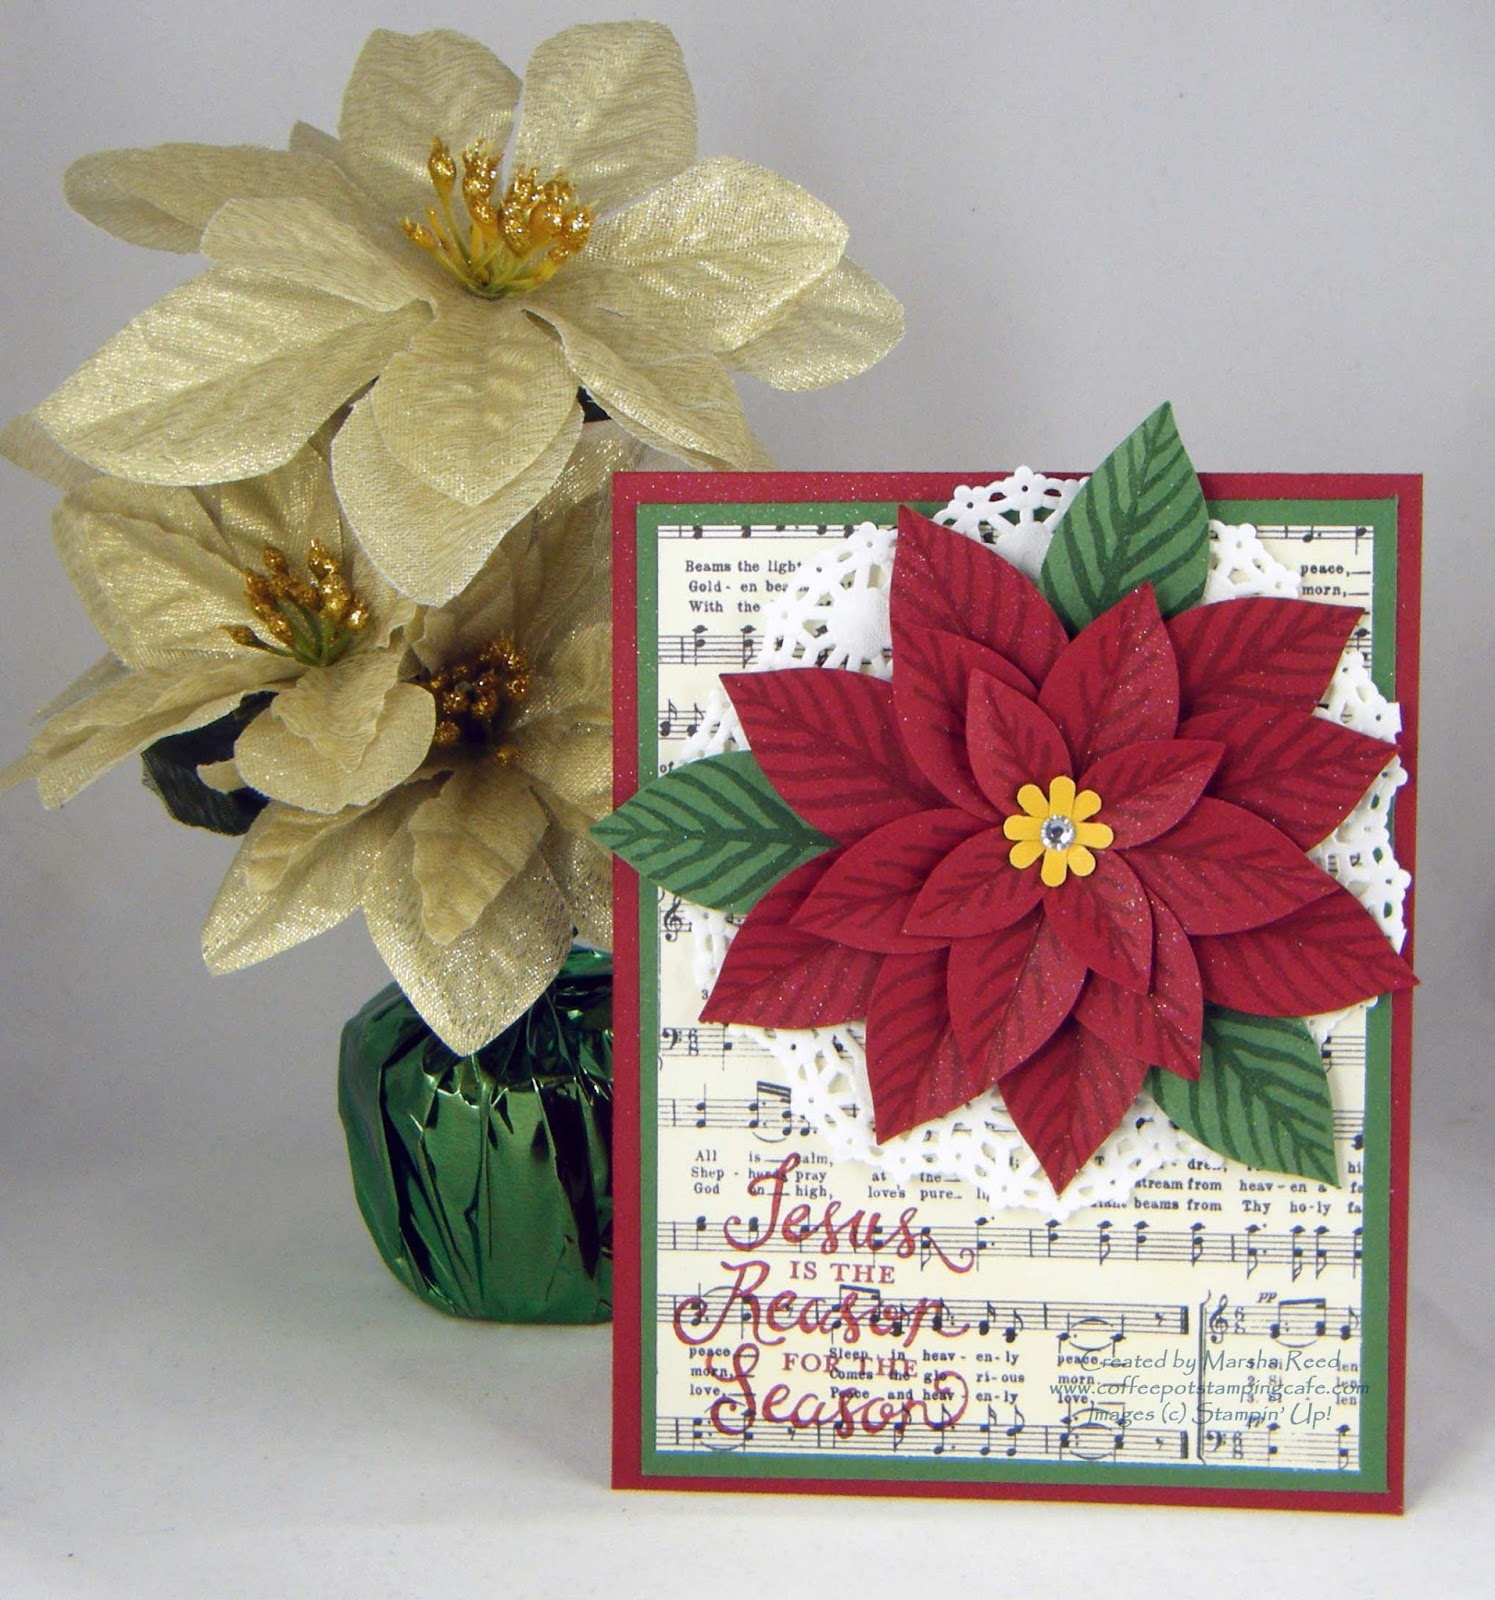 """Coffee Pot Stamping Cafe Wacky Watercooler """"all Out. Outdoor Christmas Decorations No Lights. Cheap Christmas Decor In Dapitan. Christmas Ornaments At Home Depot. Christmas Decorations For Candles. Wholesale Christmas Decorations In Atlanta. Christmas Decorations To Make And Sale. Inexpensive Christmas Decorating Ideas For The Home. Best Christmas Decorations Online Uk"""